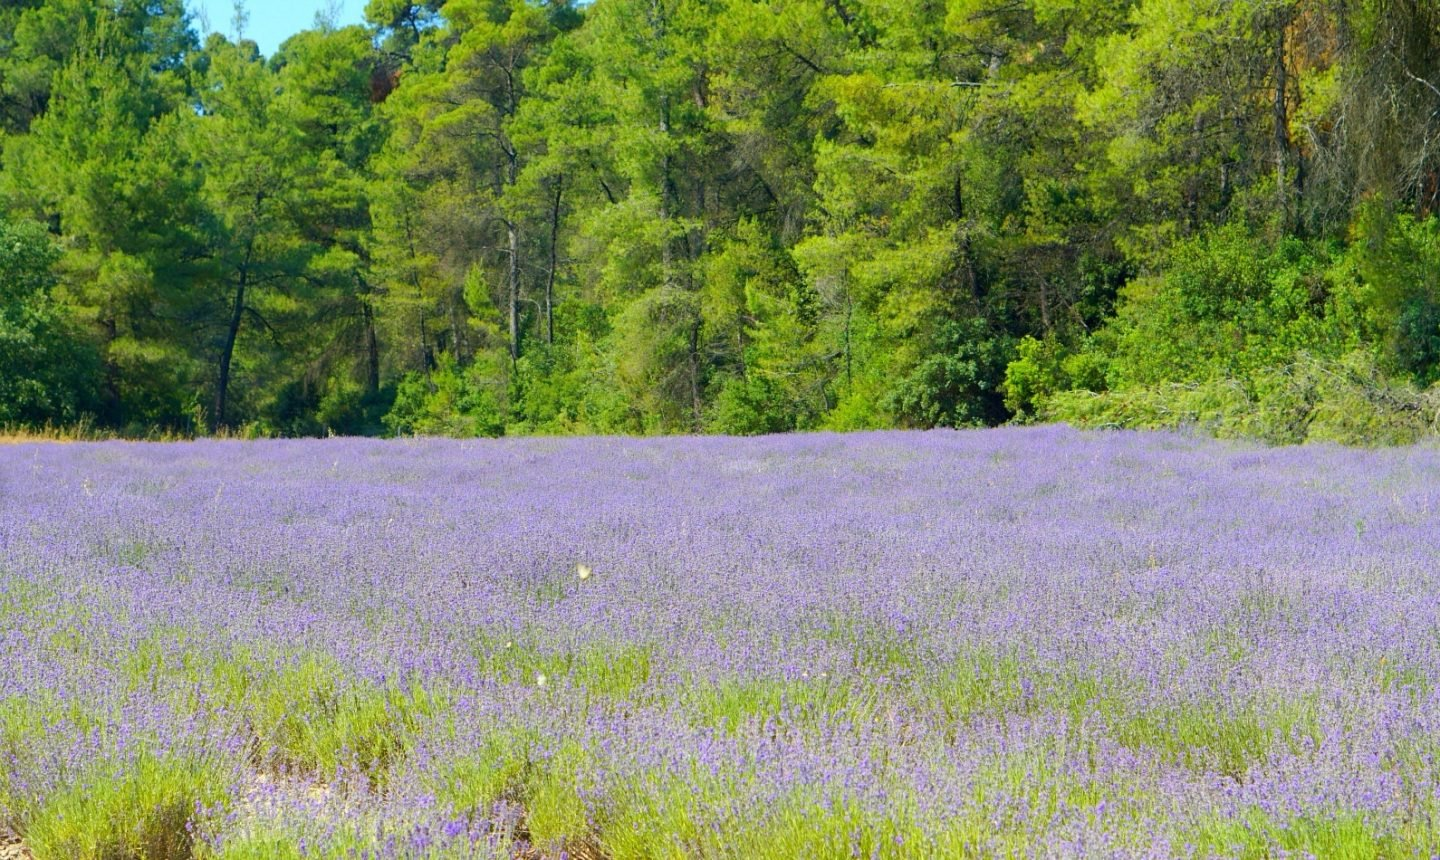 Lavender Fields in Halkidiki Greece extraordianrychaos.com